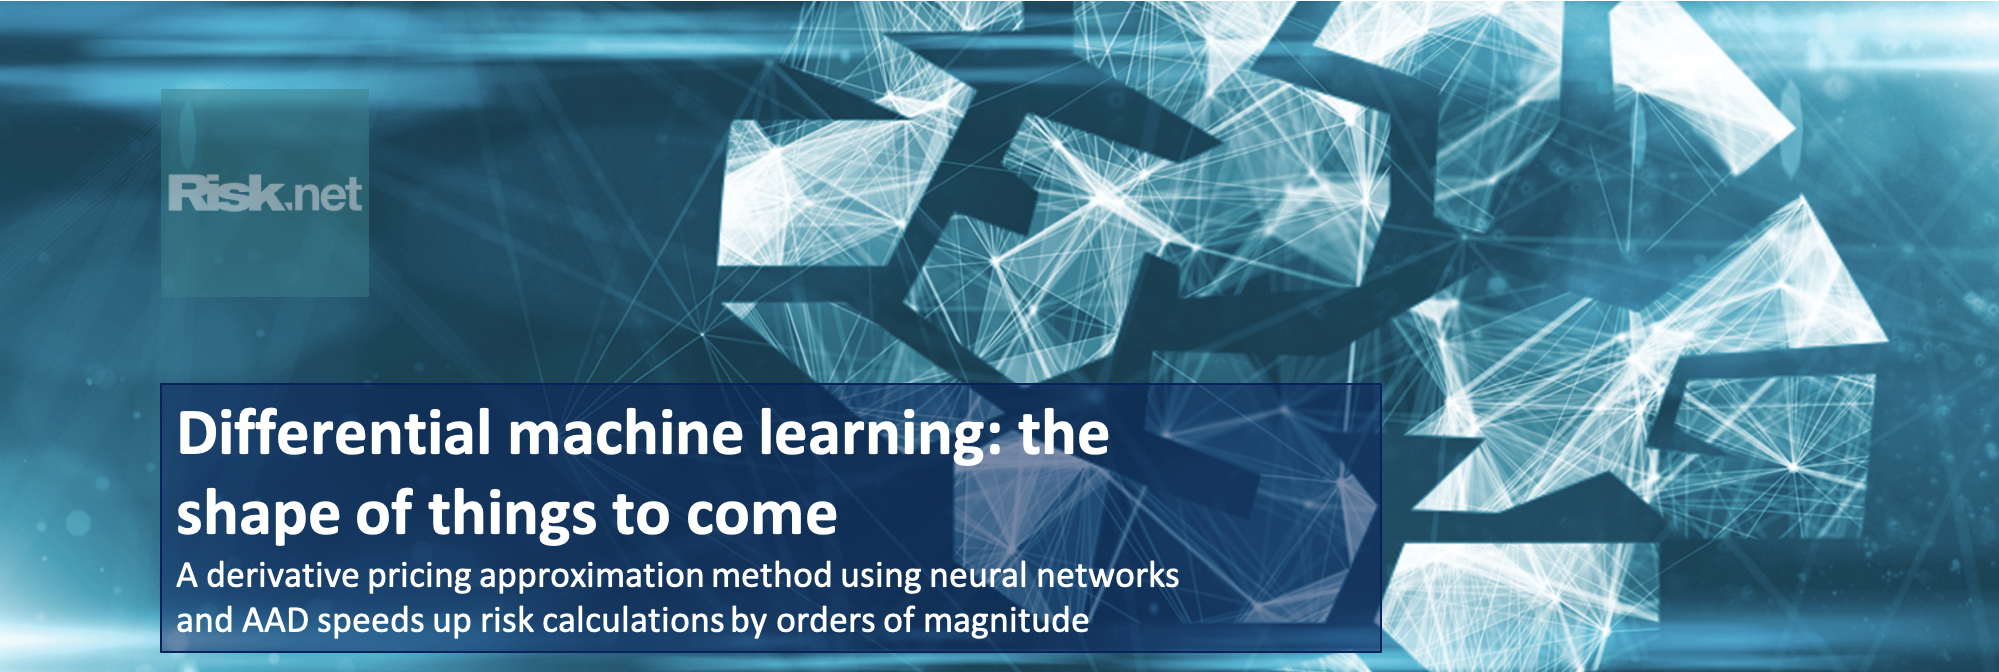 Differential Machine Learning, Risk, 2020